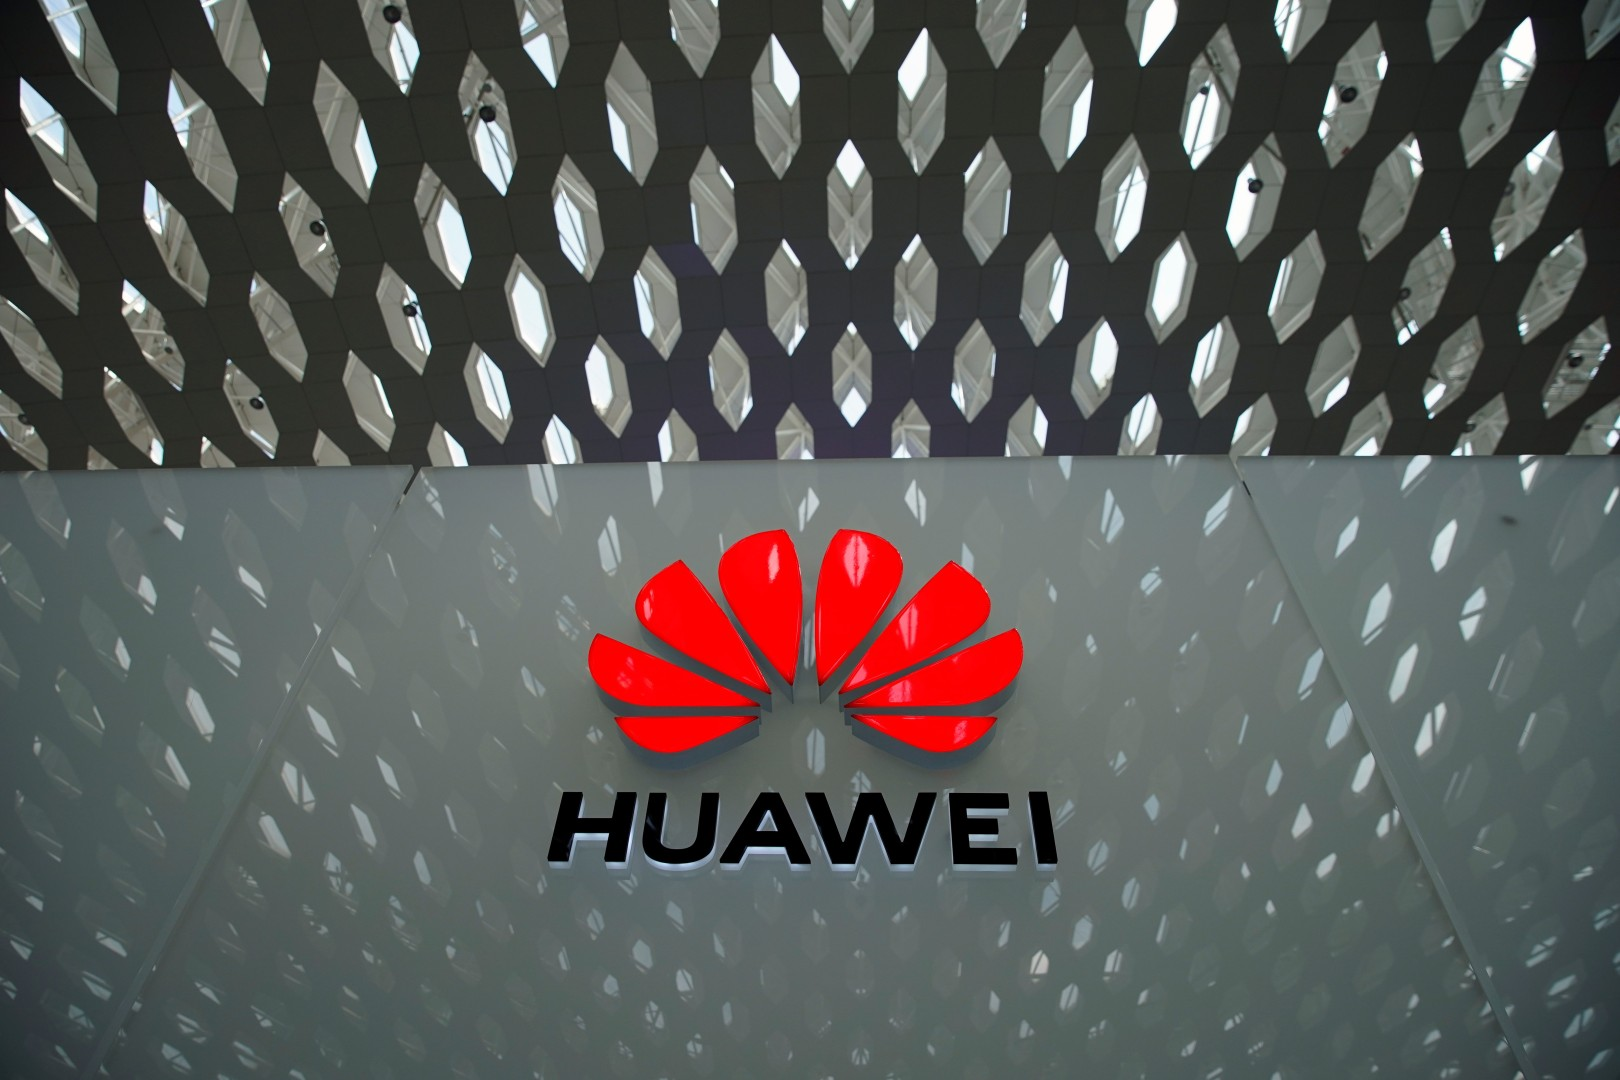 Mahathir's Malaysia supports Huawei, but should be more